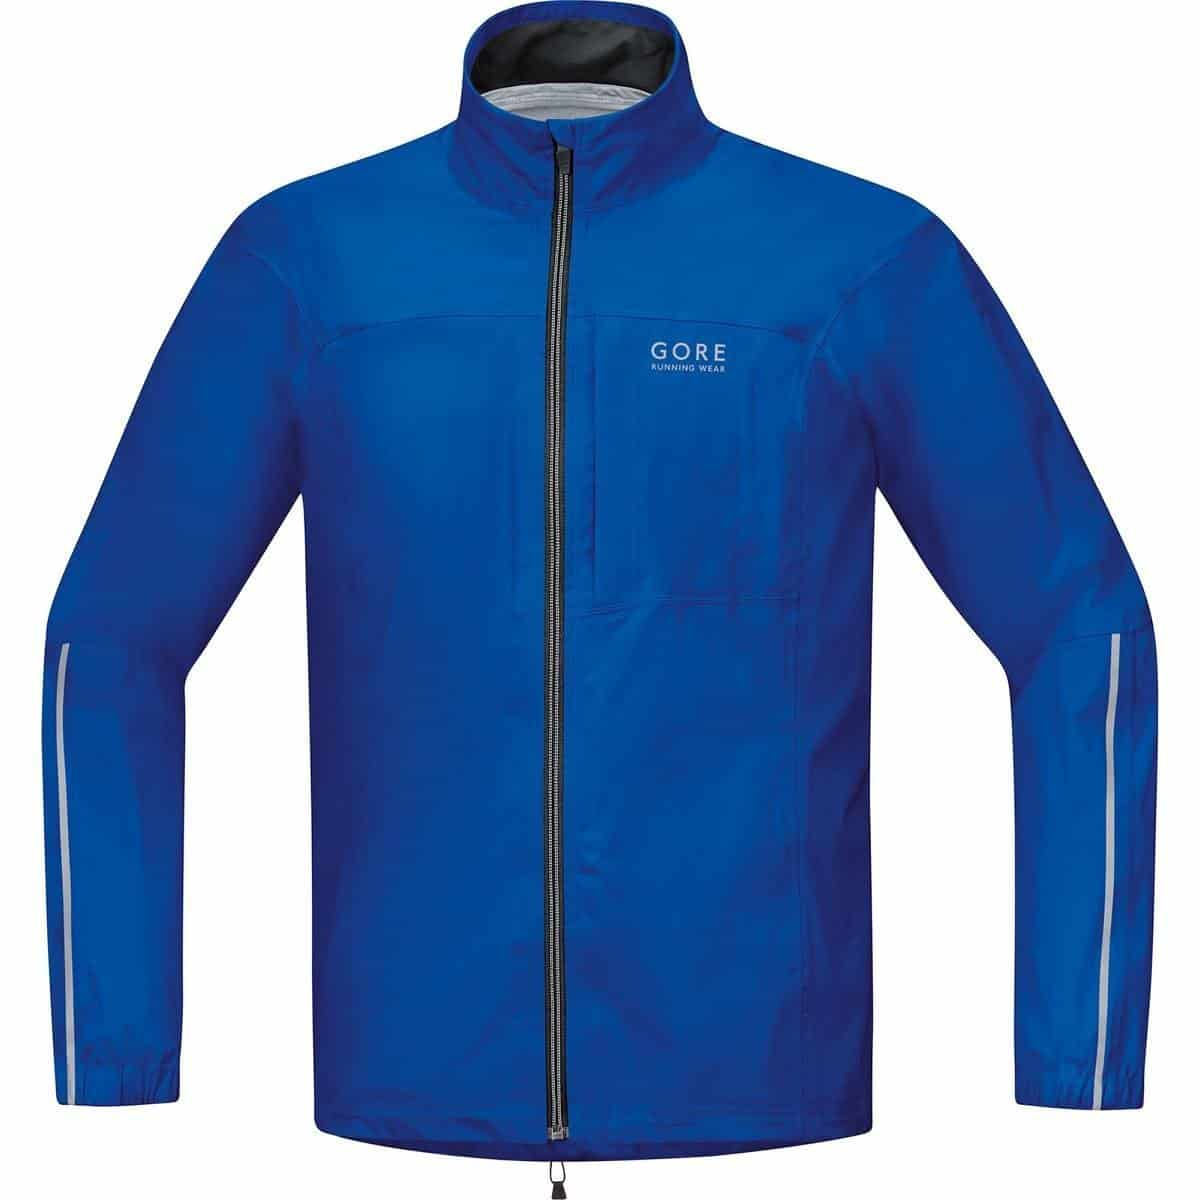 Best Men's Lightweight Running Jacket – Gore